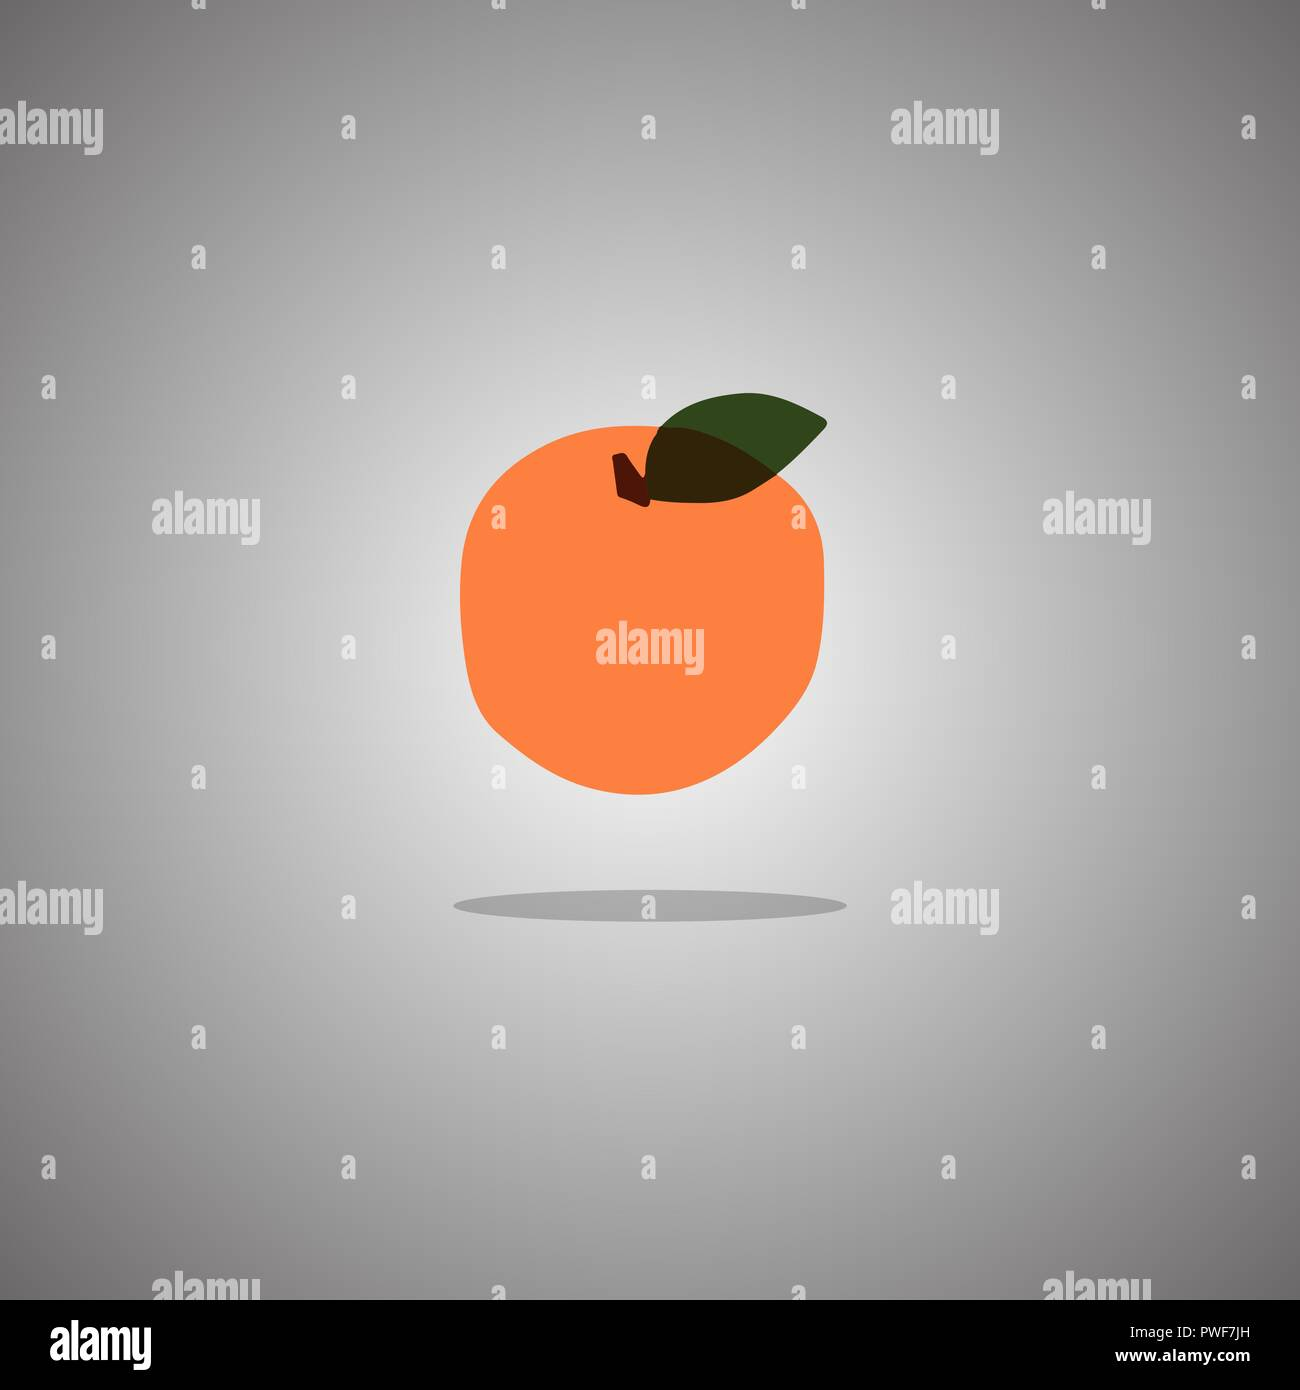 Orange on a gray background with a gradient. Vector illustration. - Stock Vector